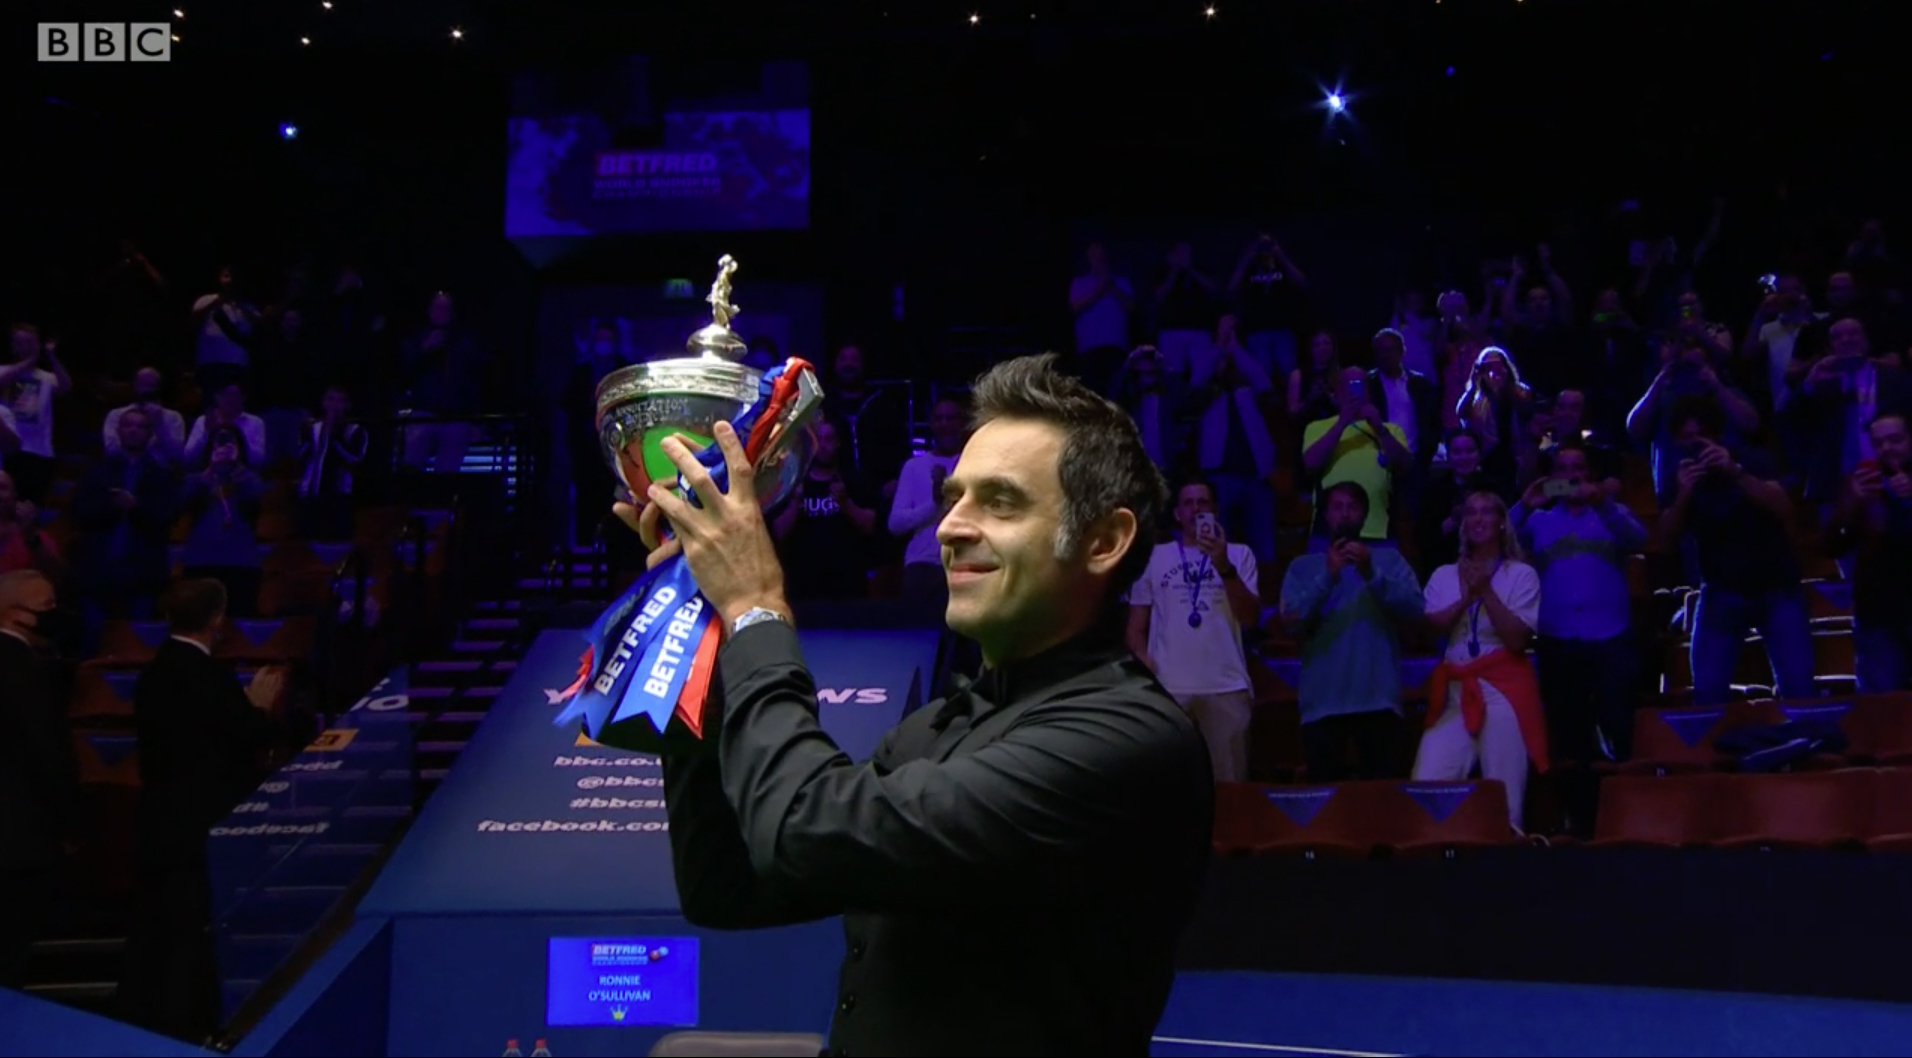 Ronnie O'Sullivan lifting the Betfred World Snooker Championship trophy.